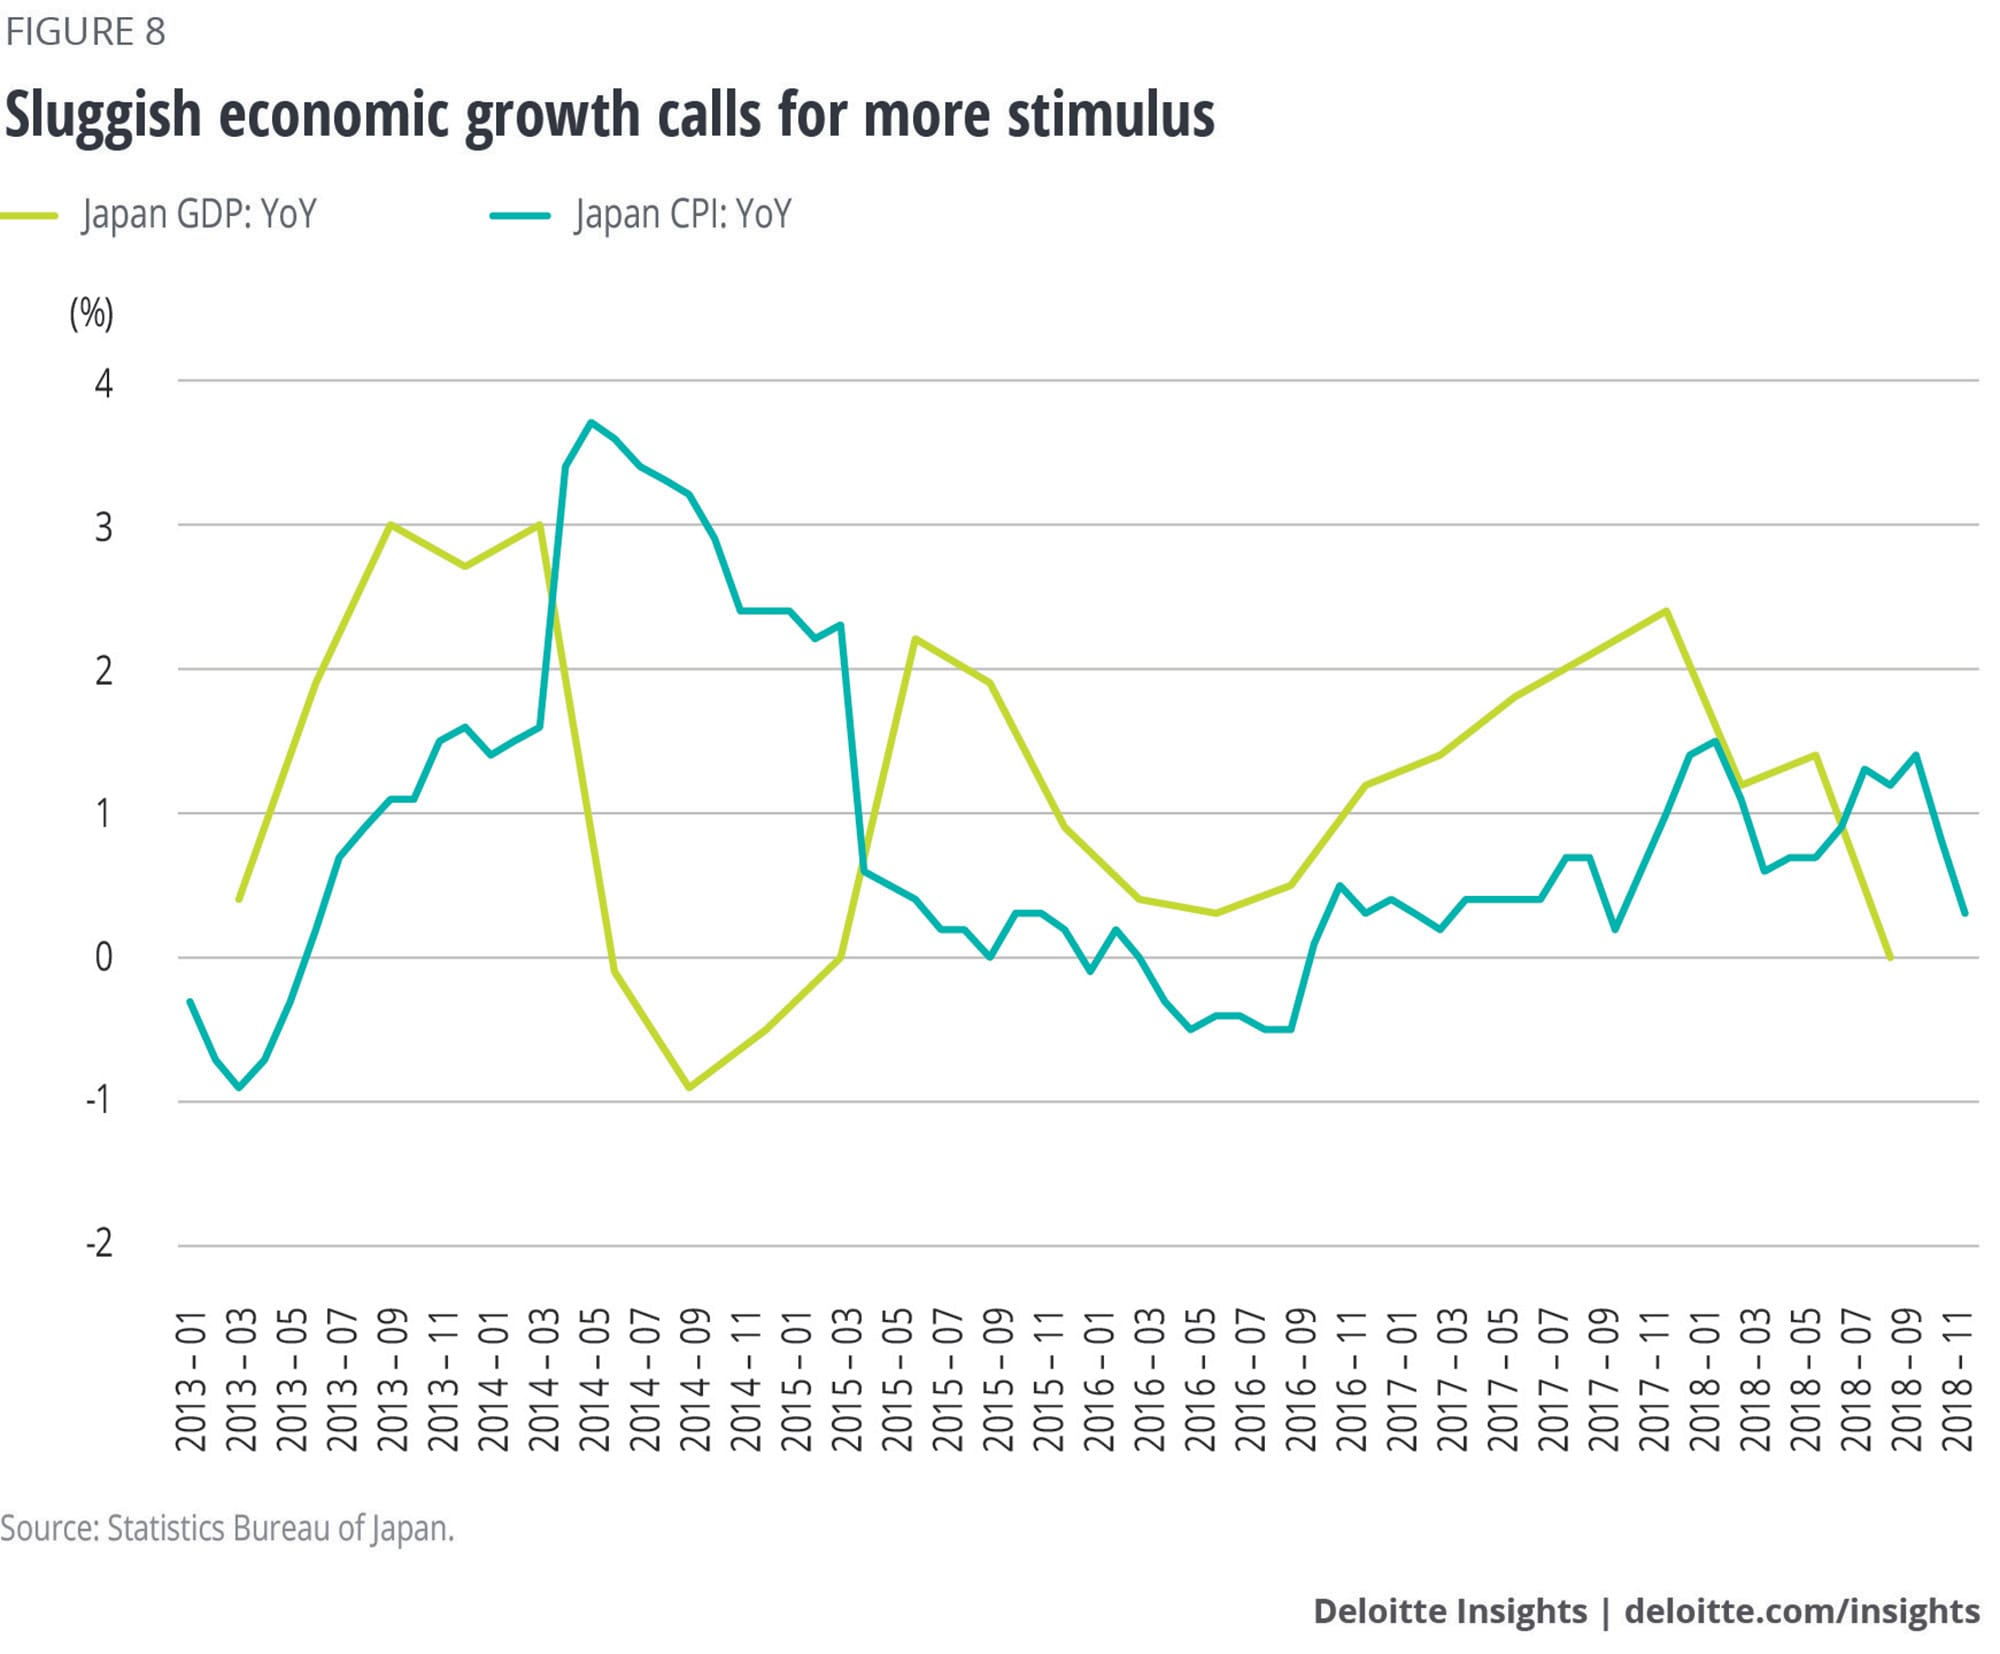 Sluggish economic growth calls for more stimulus